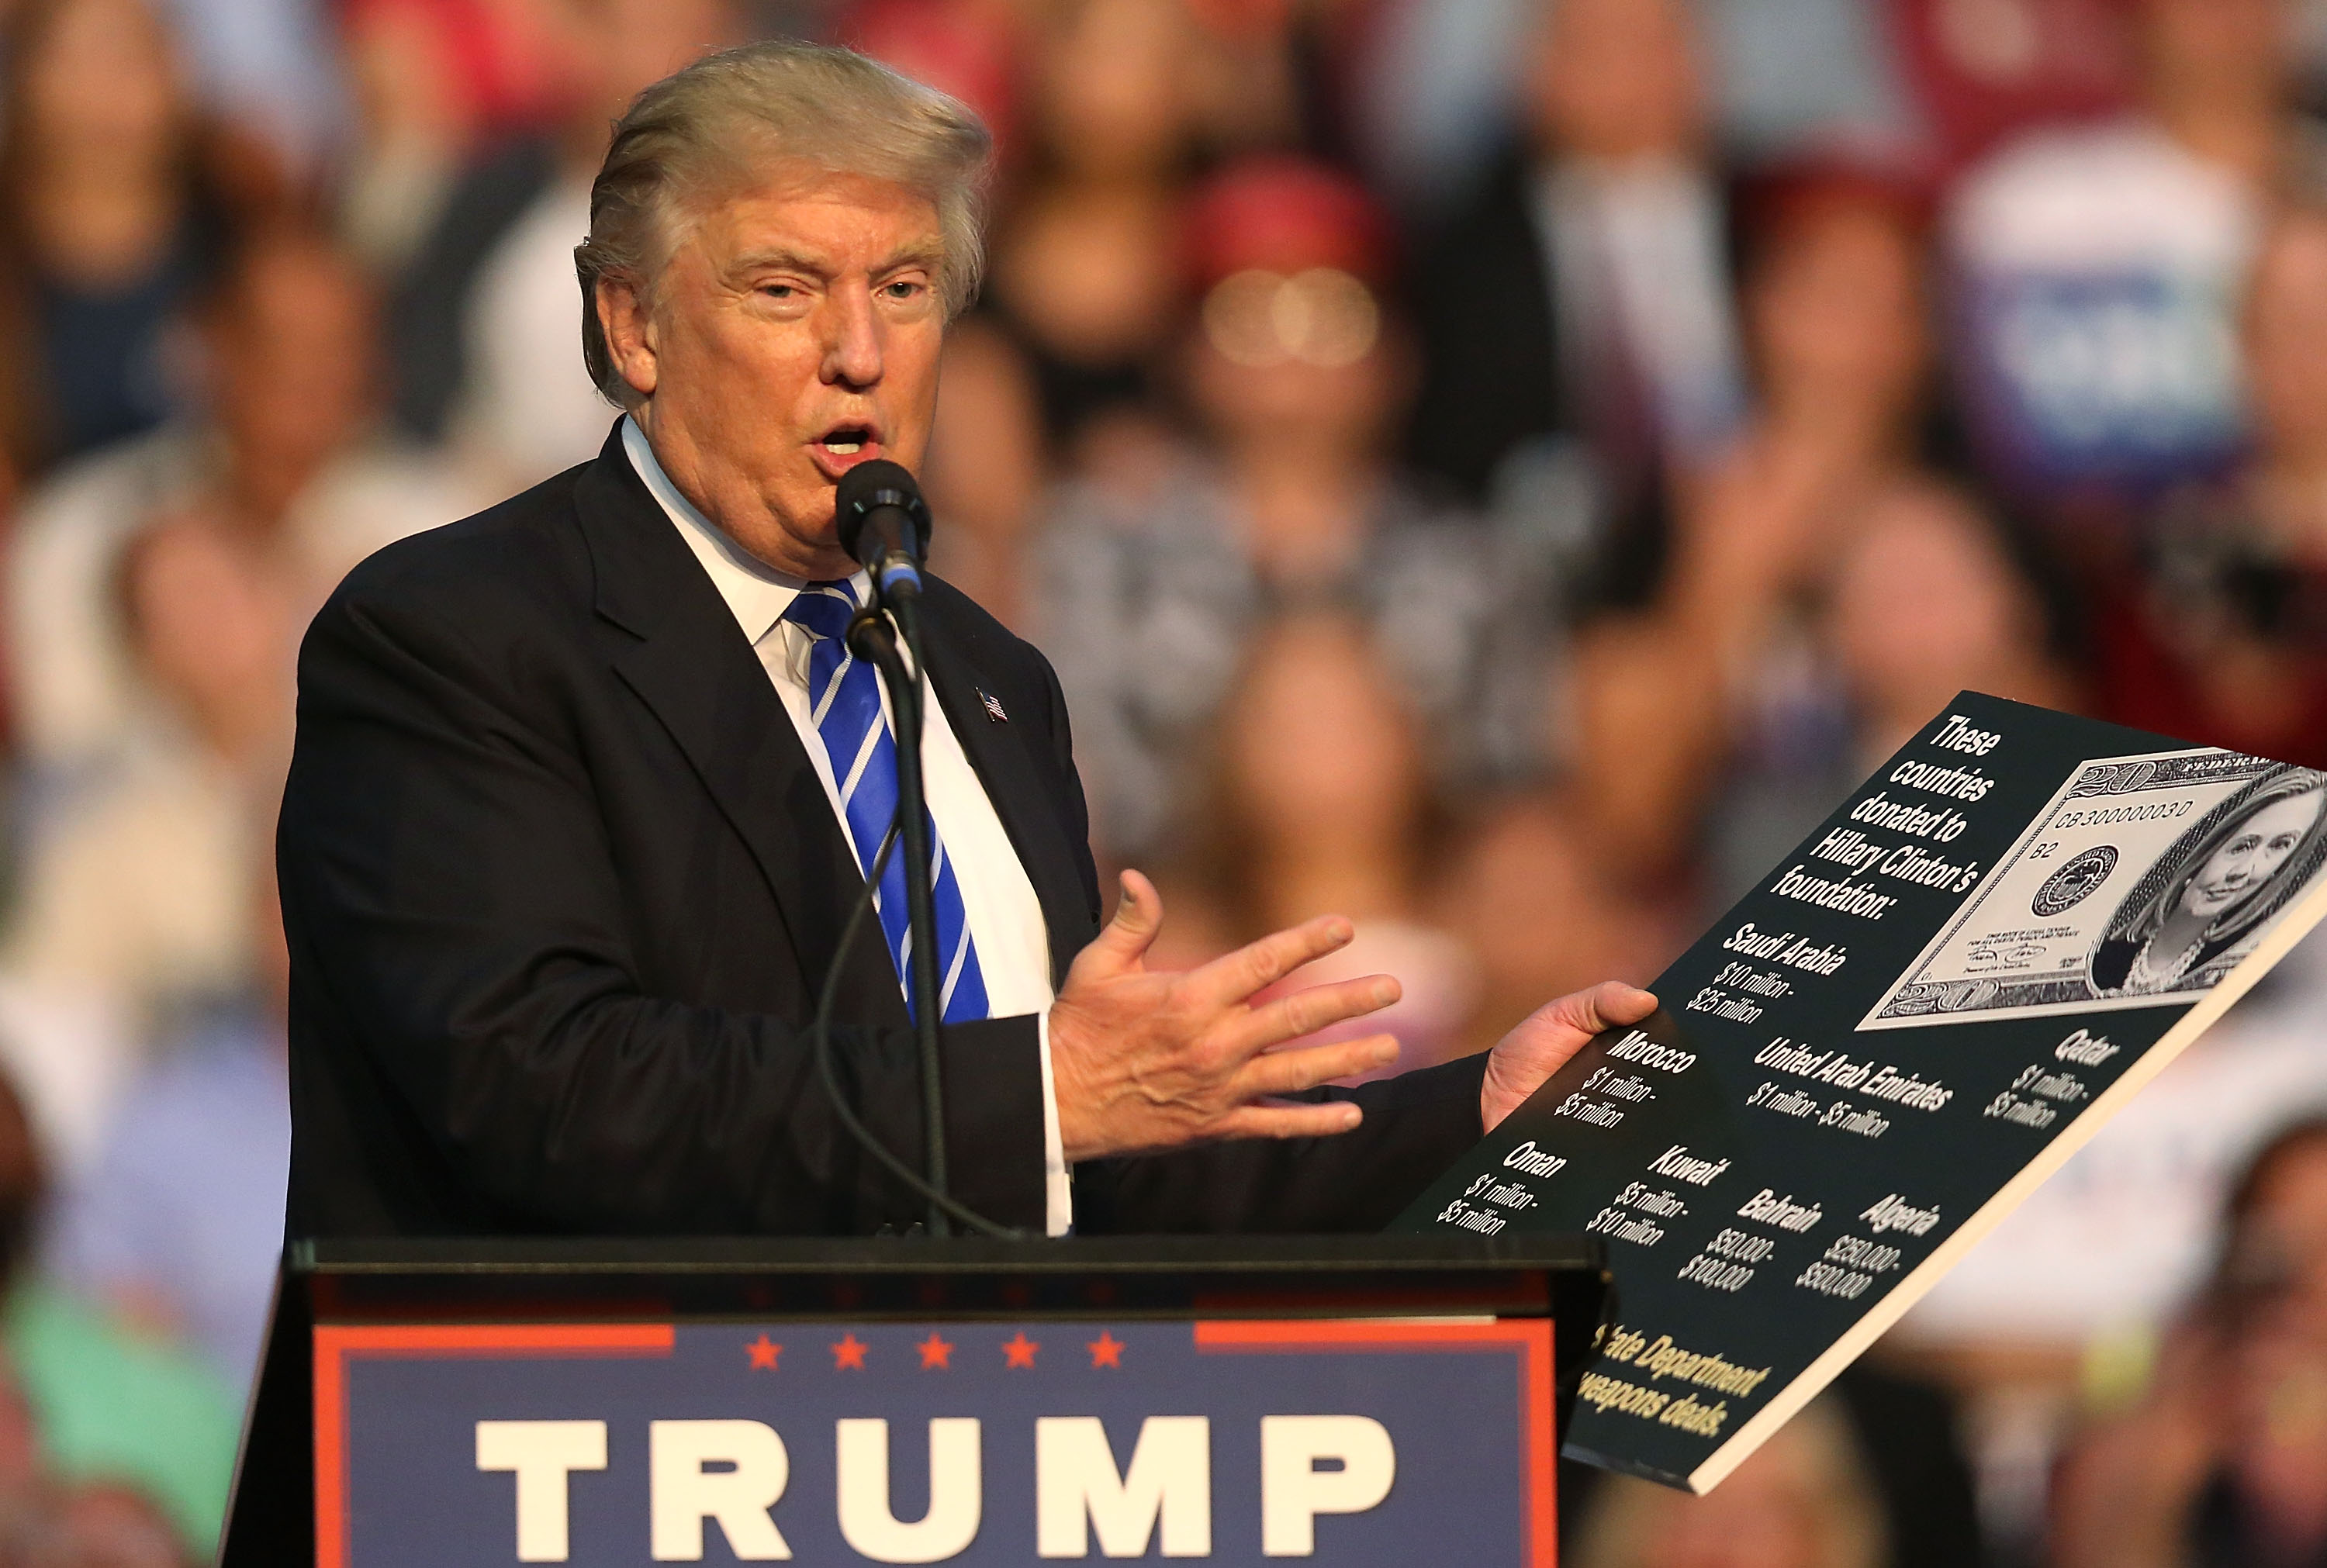 Republican presidential nominee Donald Trump holds up a chart as he makes a point as he speaks during his campaign event at the BB&T Center on August 10, 2016 in Fort Lauderdale, Florida.